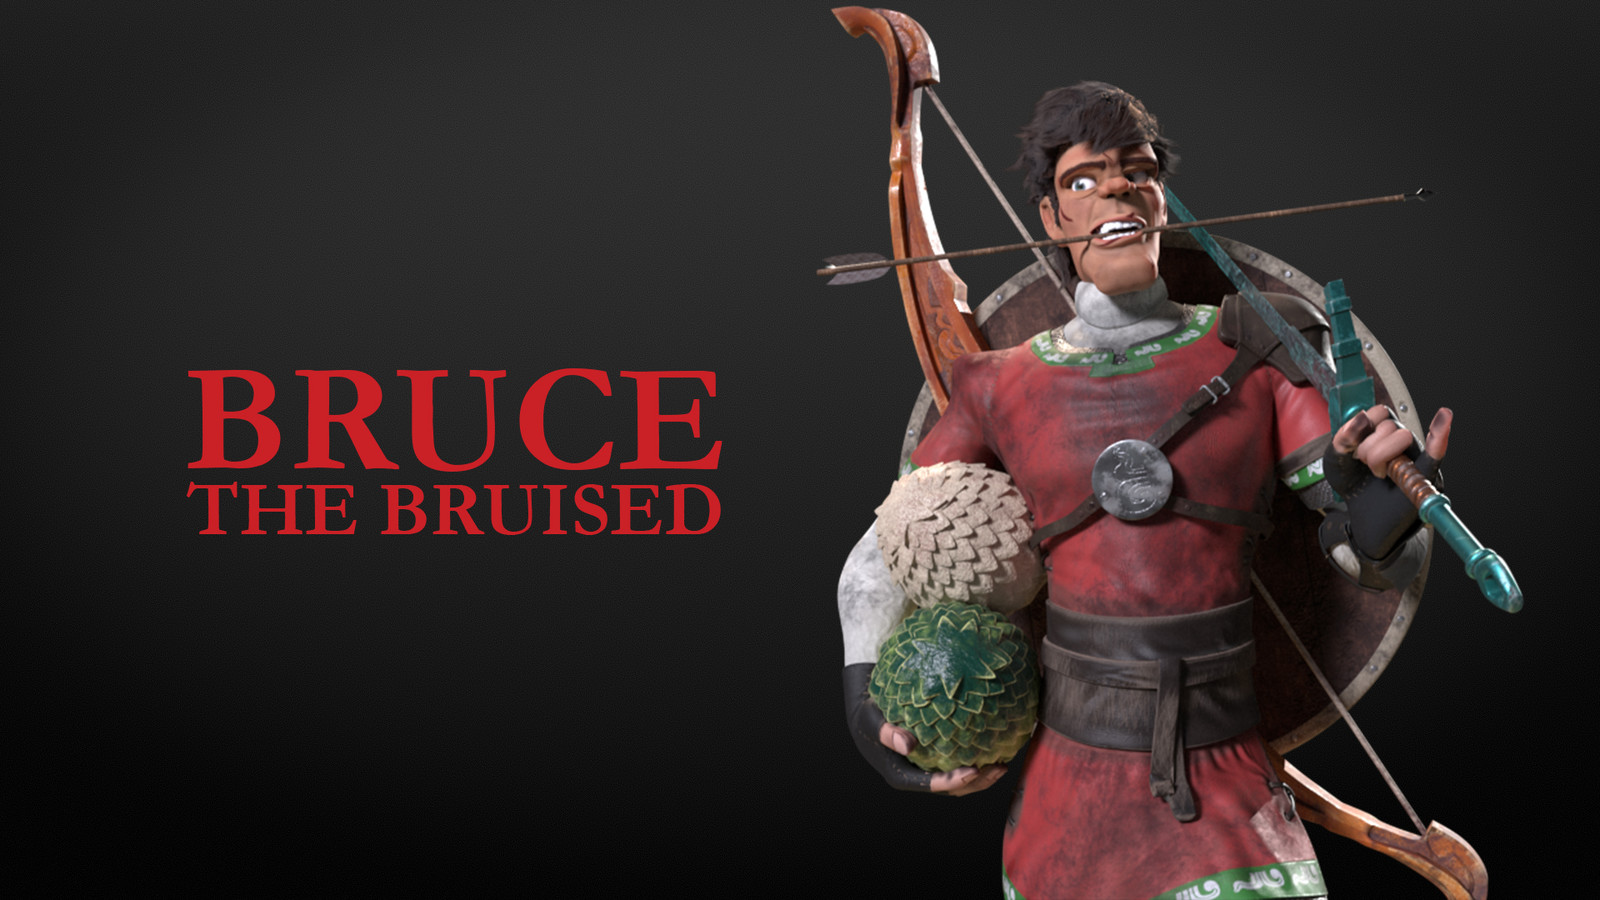 Bruce the Bruised